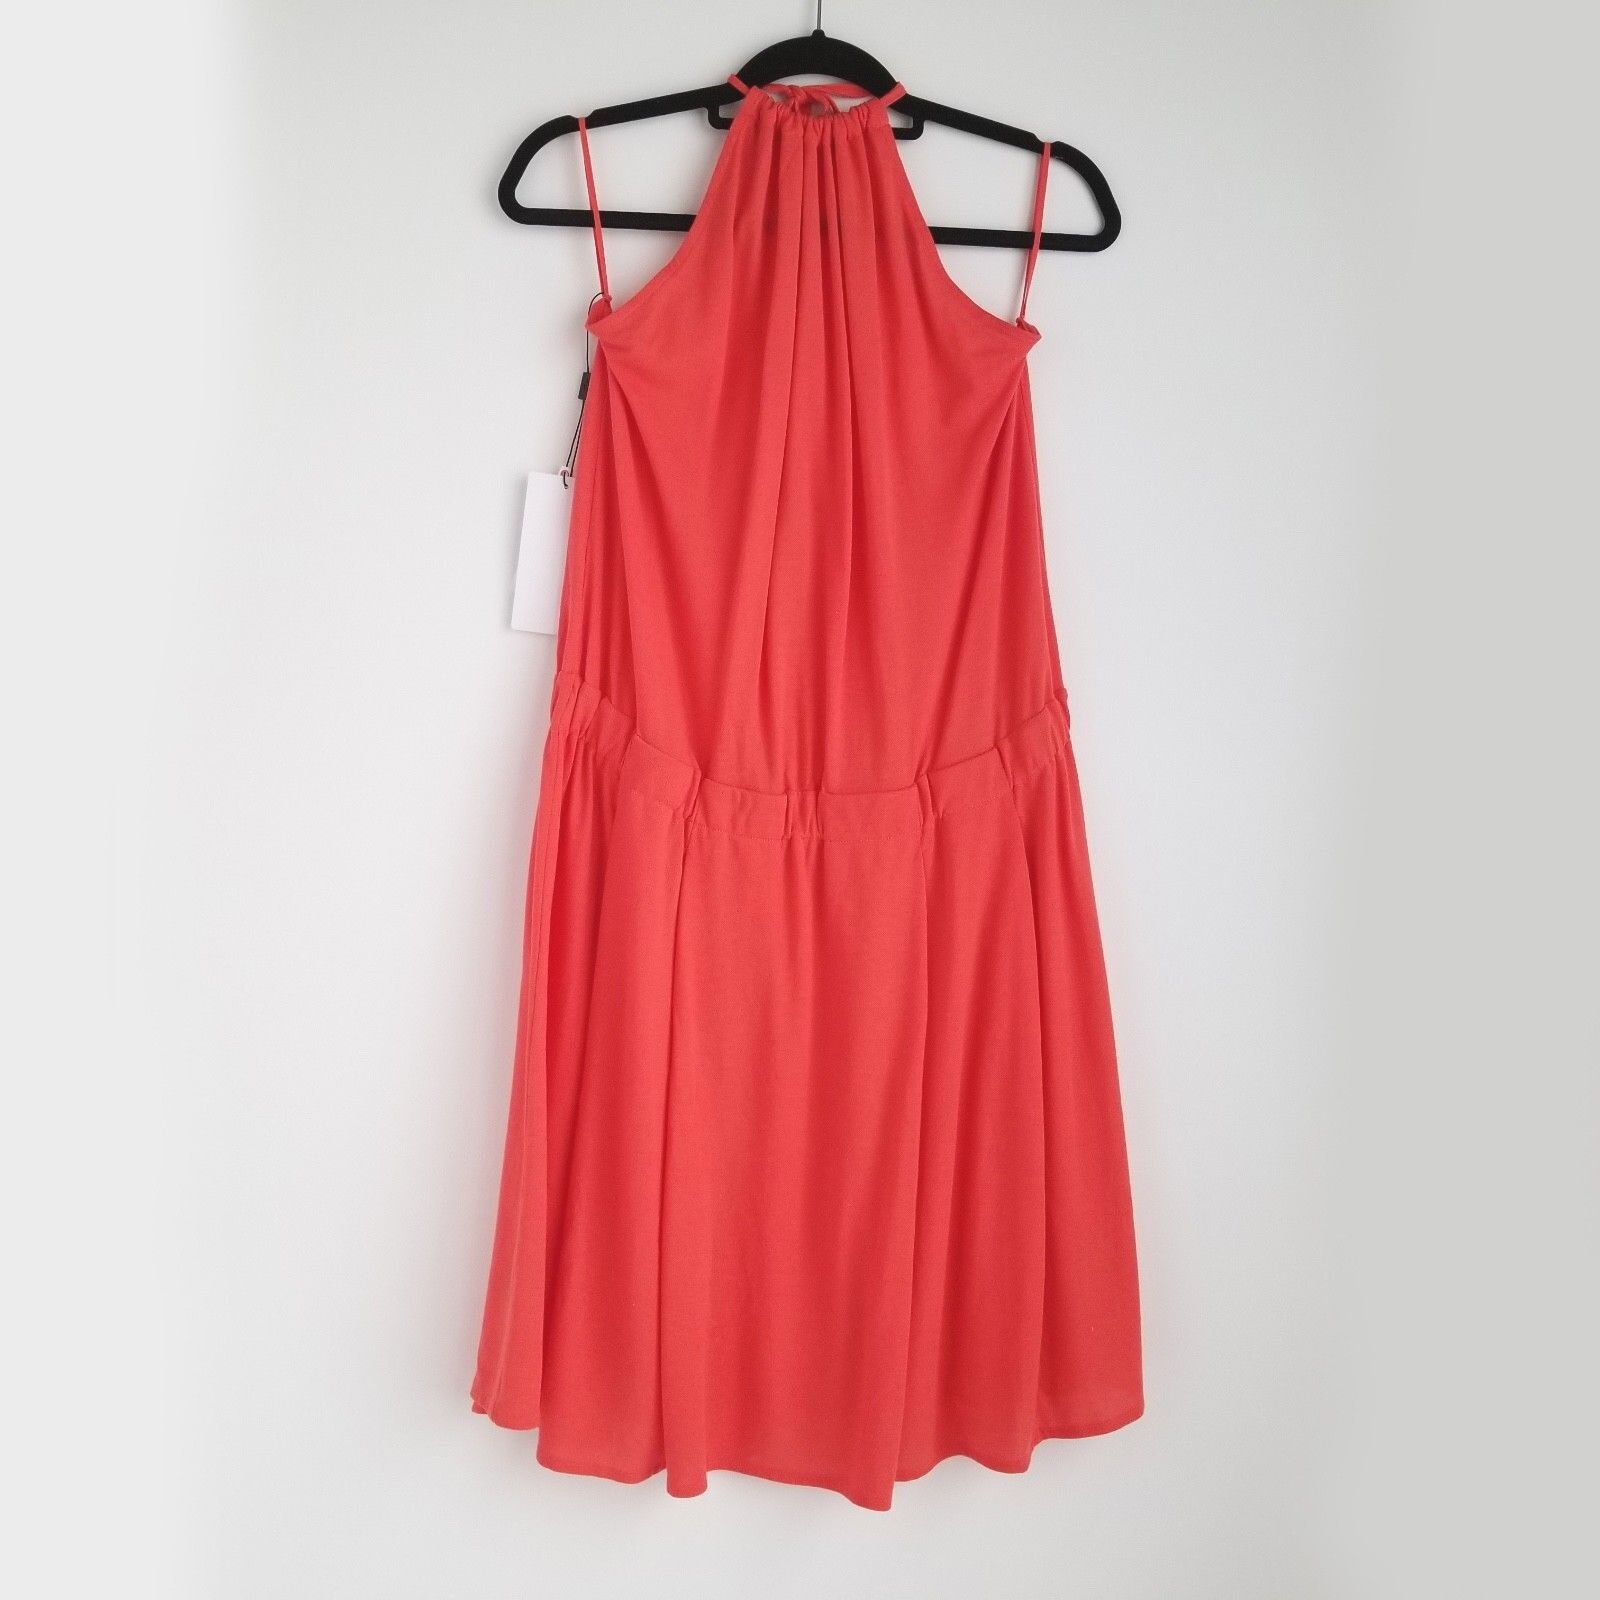 Lacoste Halter Dress damen 12 Goyave Coral Elastic Waist - Brand New w  Tag